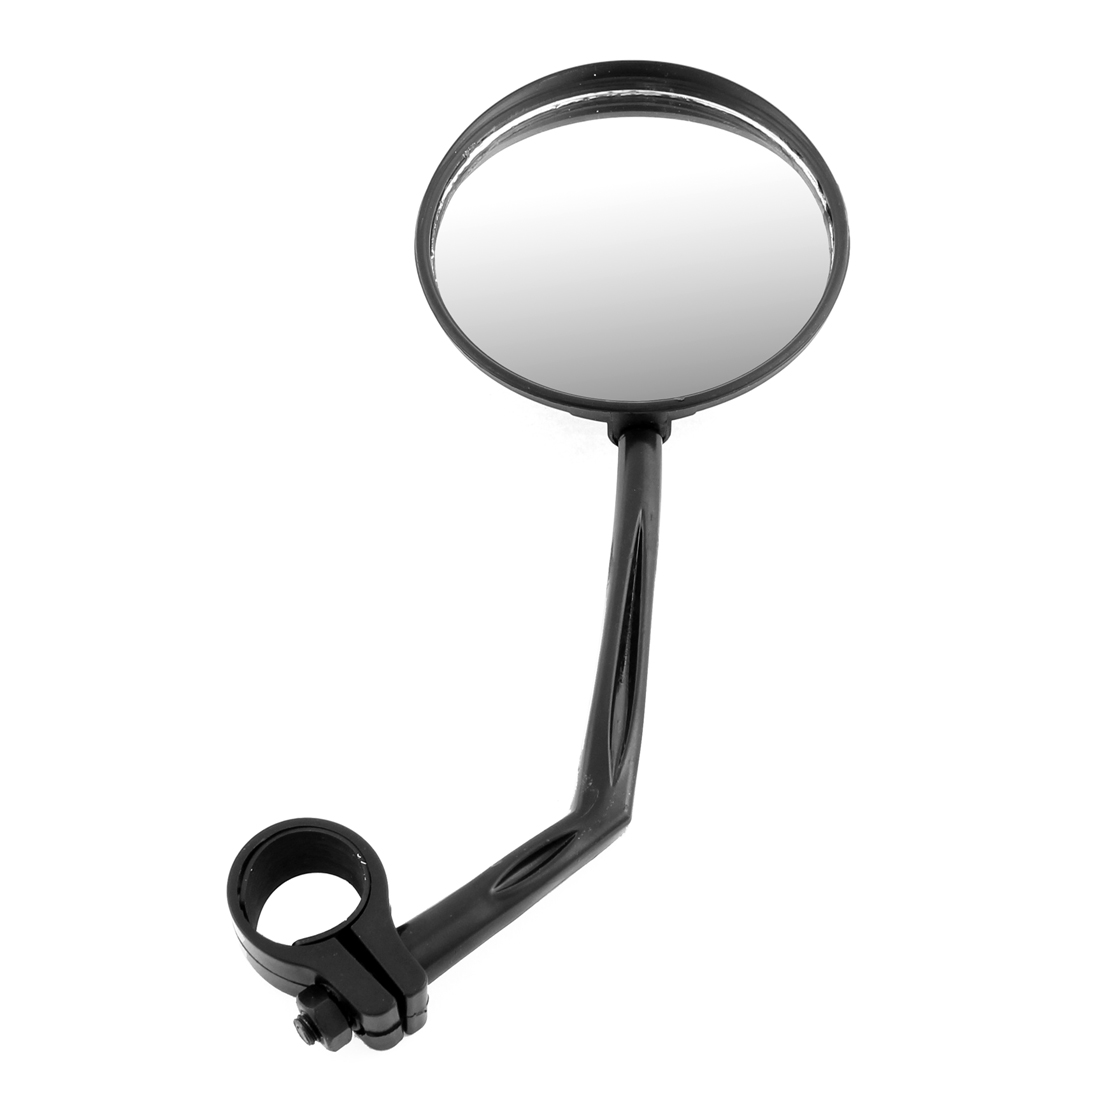 Mountain Bike Bicycle MTB Adjustable Round Convex Rearview Mirror